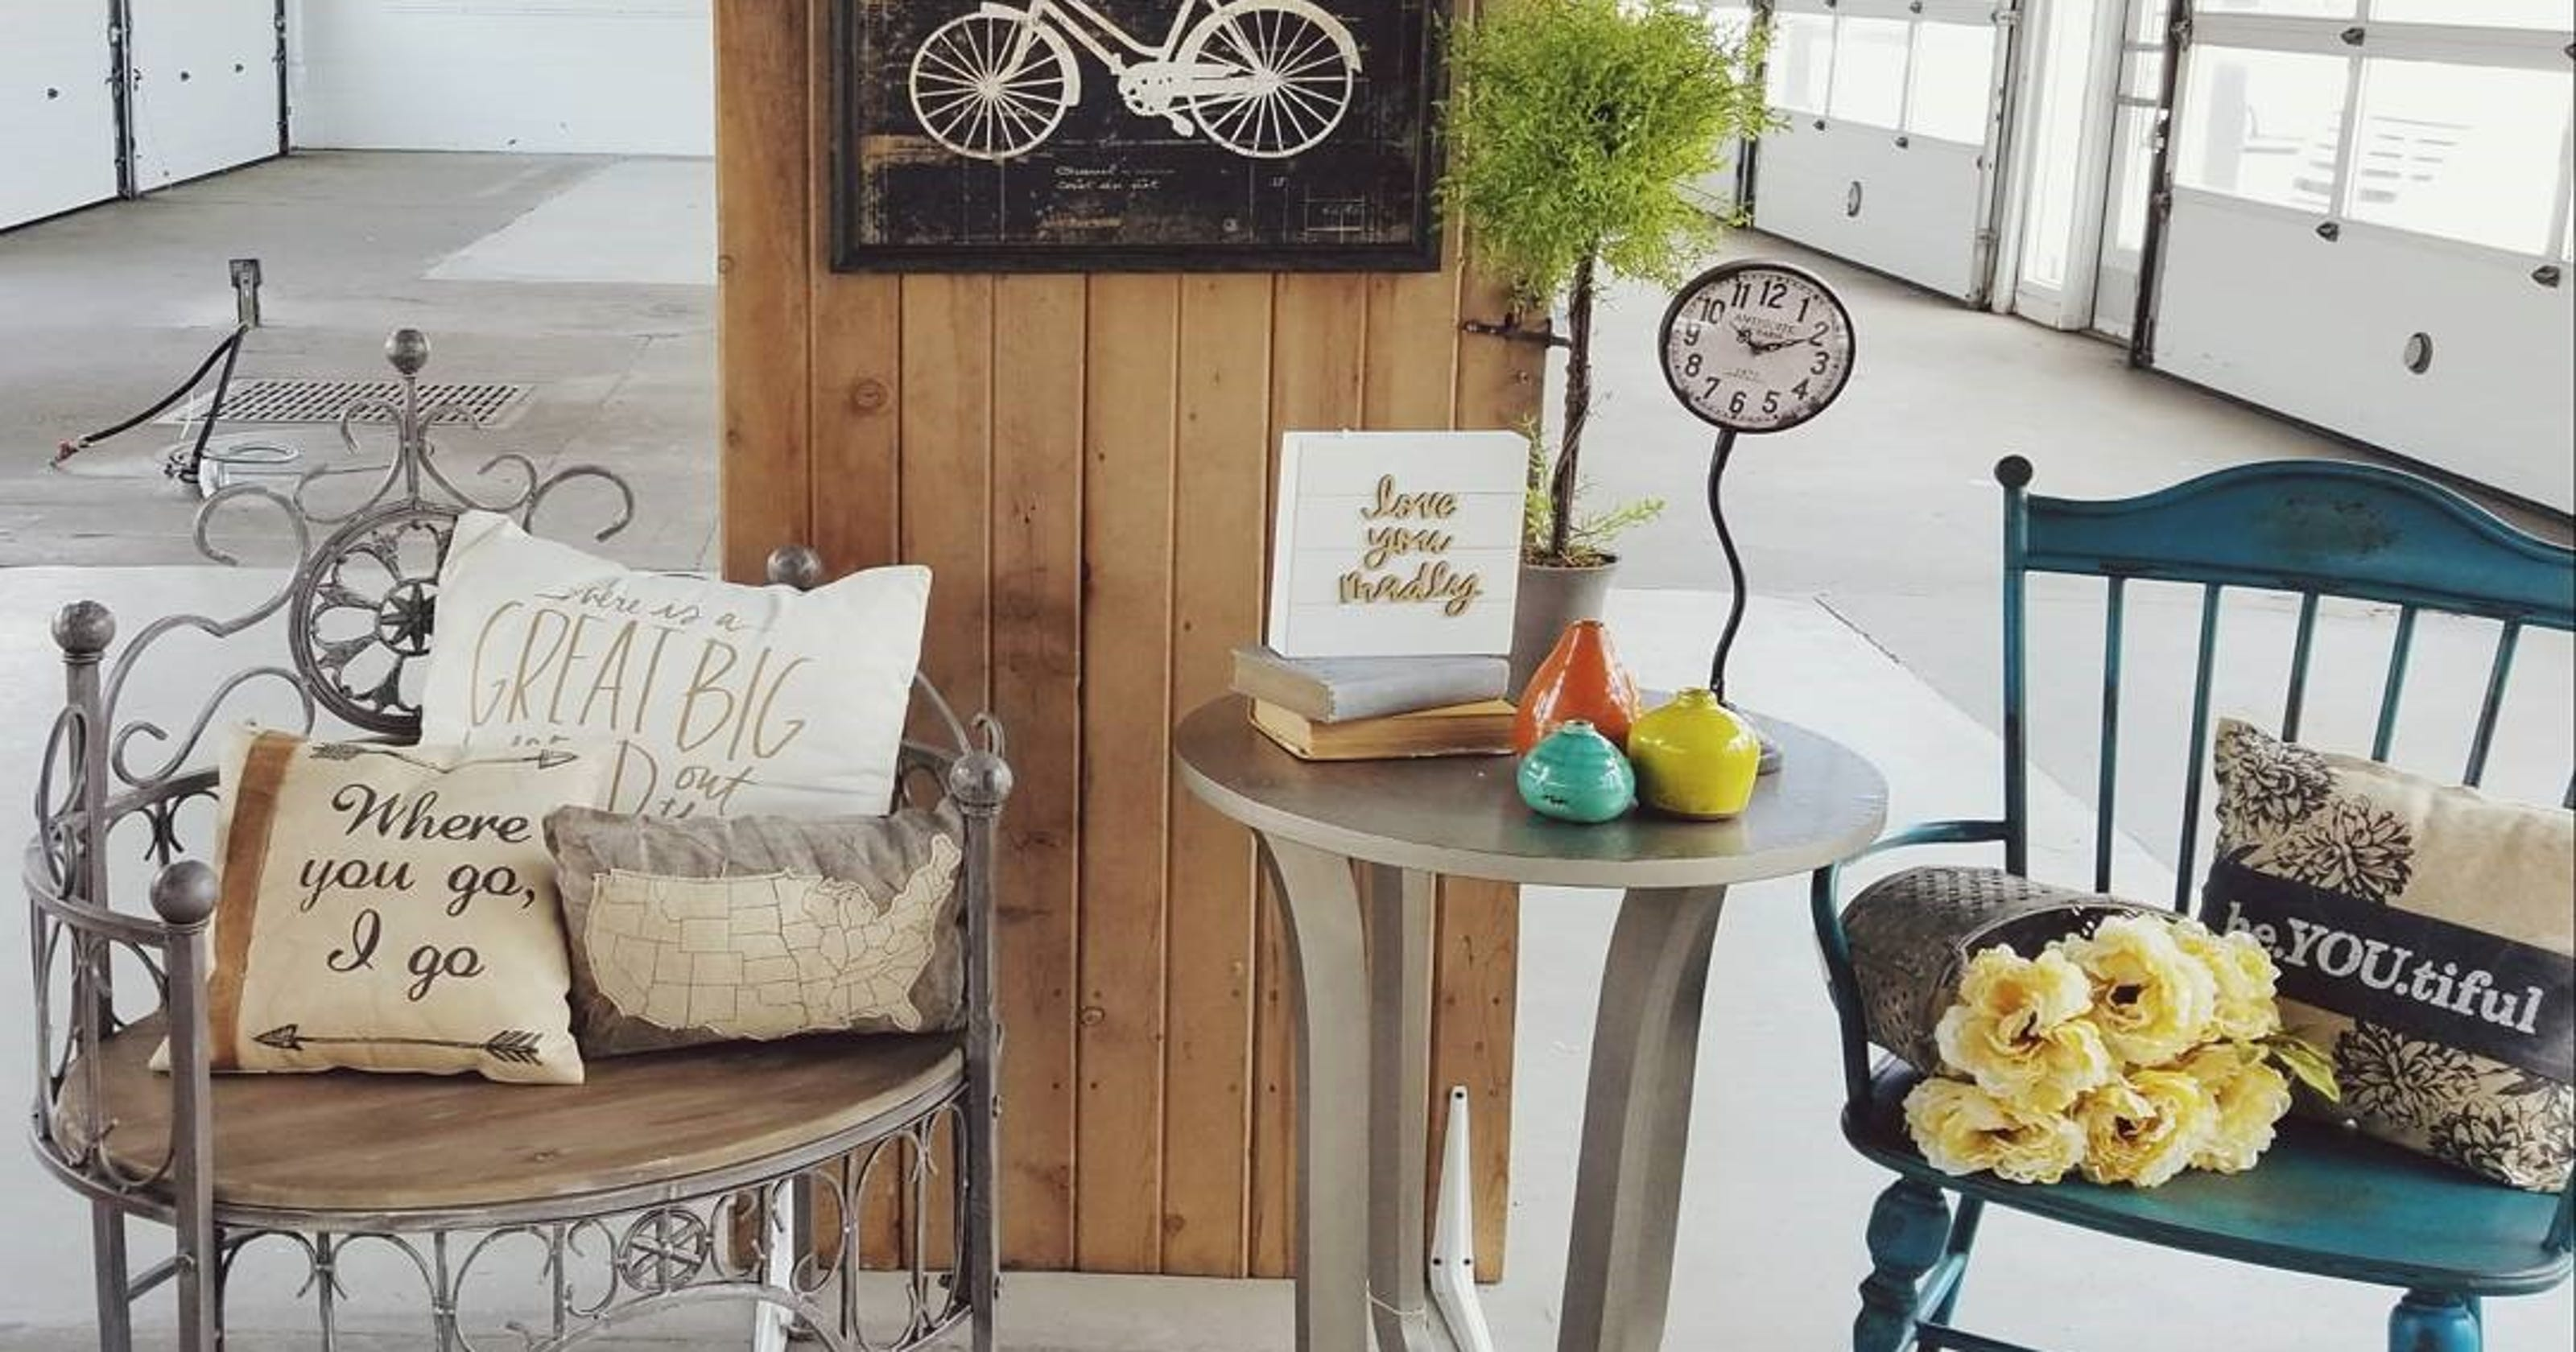 Home Decor Store To Close Sioux Falls Location